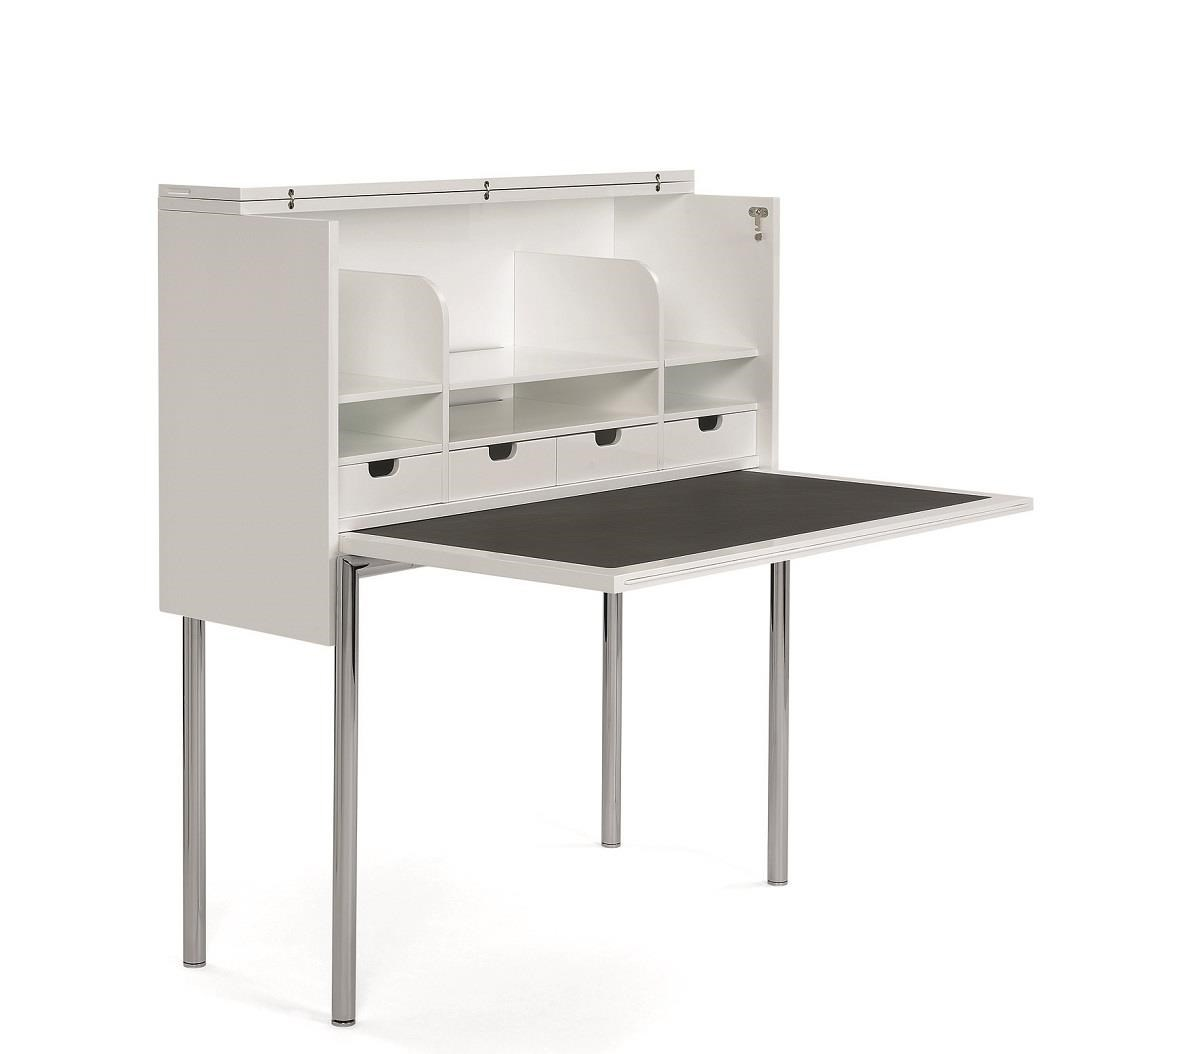 Classicon Grcic Orcus Desk 1200